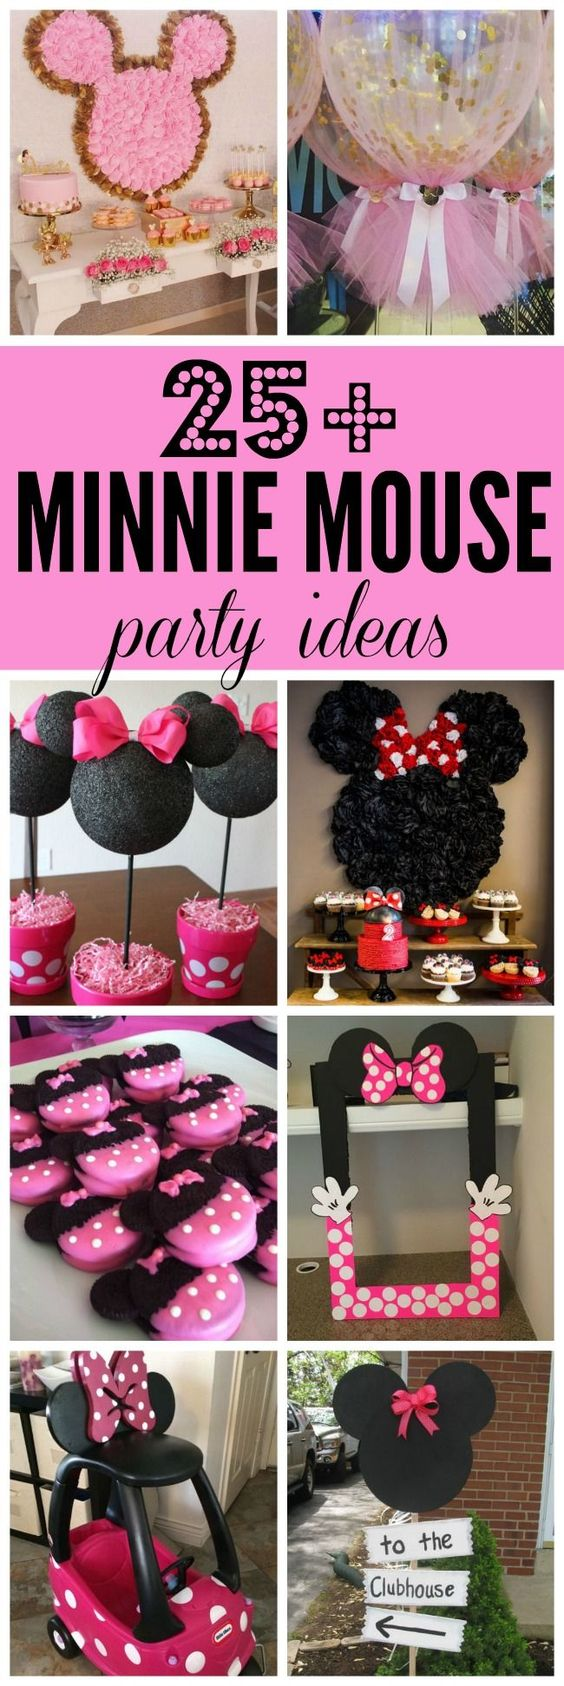 29 Minnie Mouse Party Ideas - Minnie Mouse Birthday - Pretty My Party